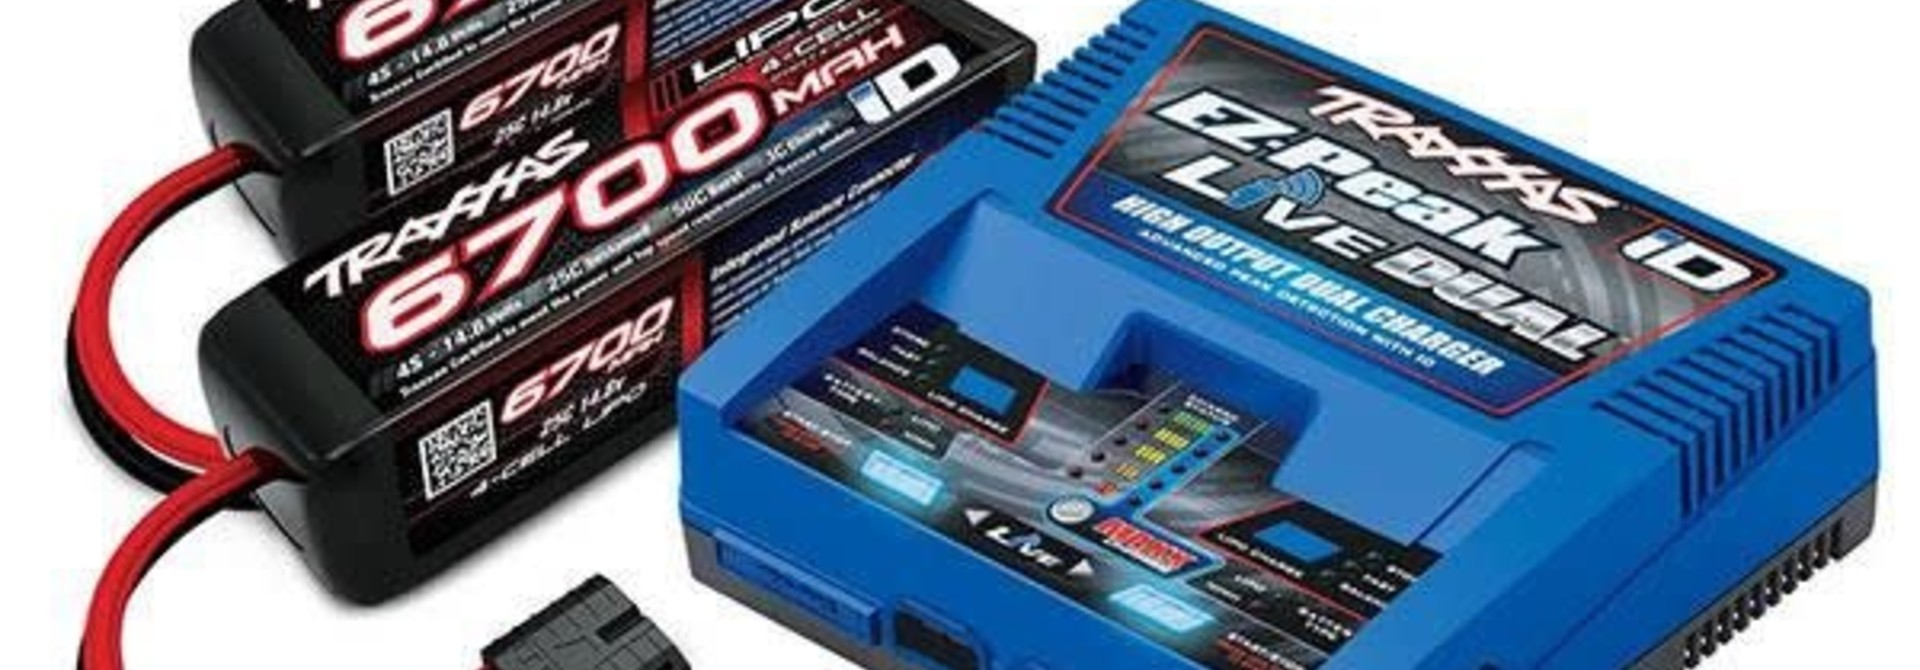 Battery/Charger Completer Pack (Includes #2973 Dual Id Charger (1), #2890X 6700Mah 14.8V 4-Cell 25C Lipo Battery (2))